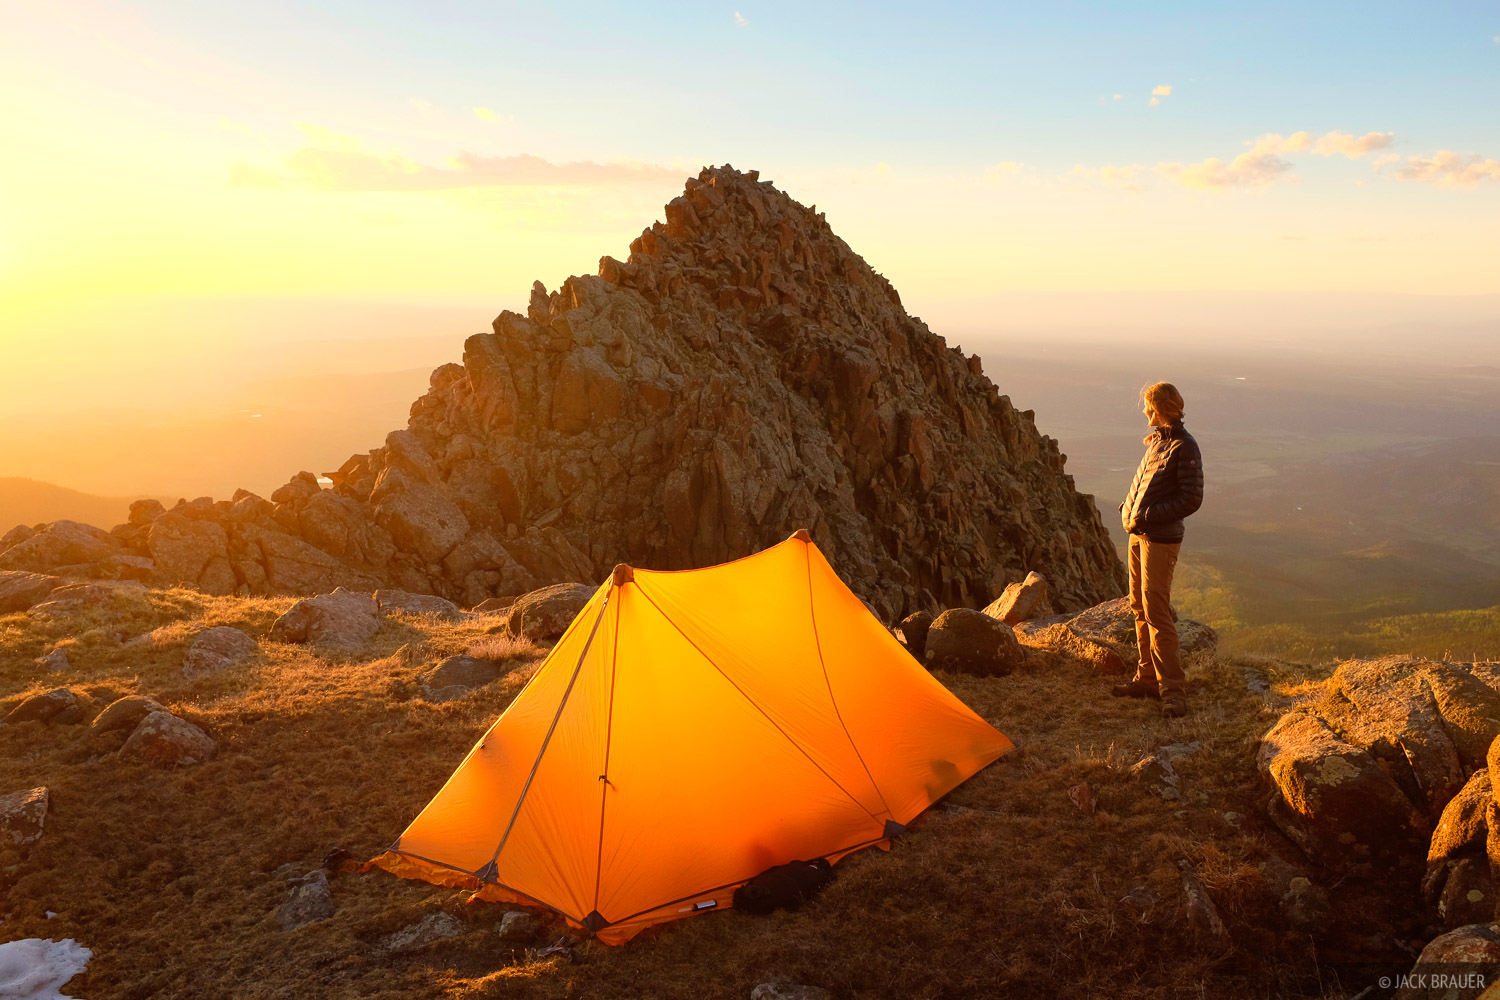 Sunset at our 12,900 foot camp on a high ridge near Mt. Sneffels - June.